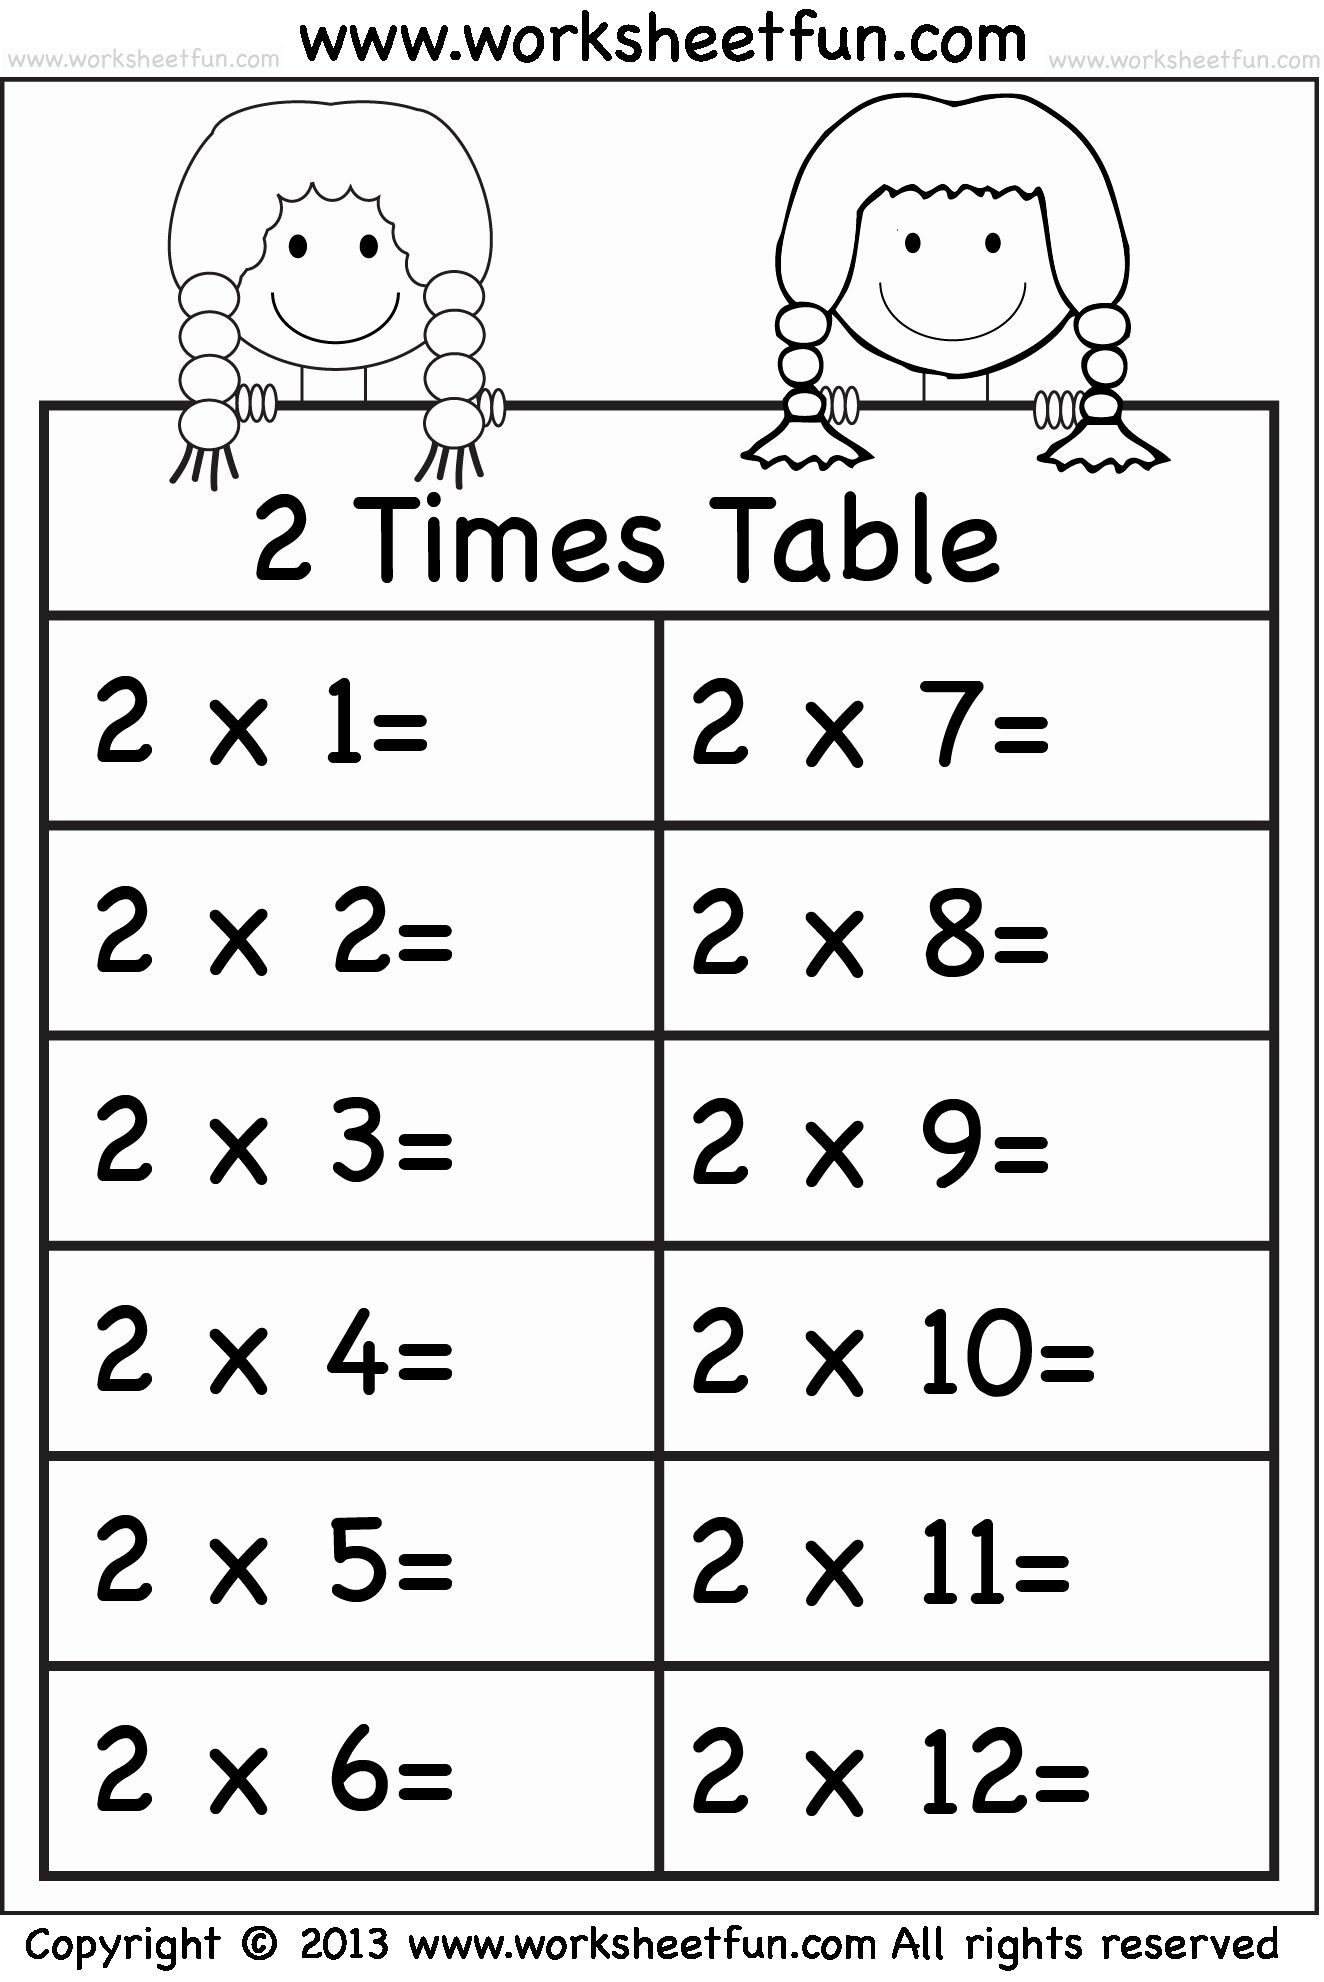 2 Times Table Worksheet Inspirational Times Tables